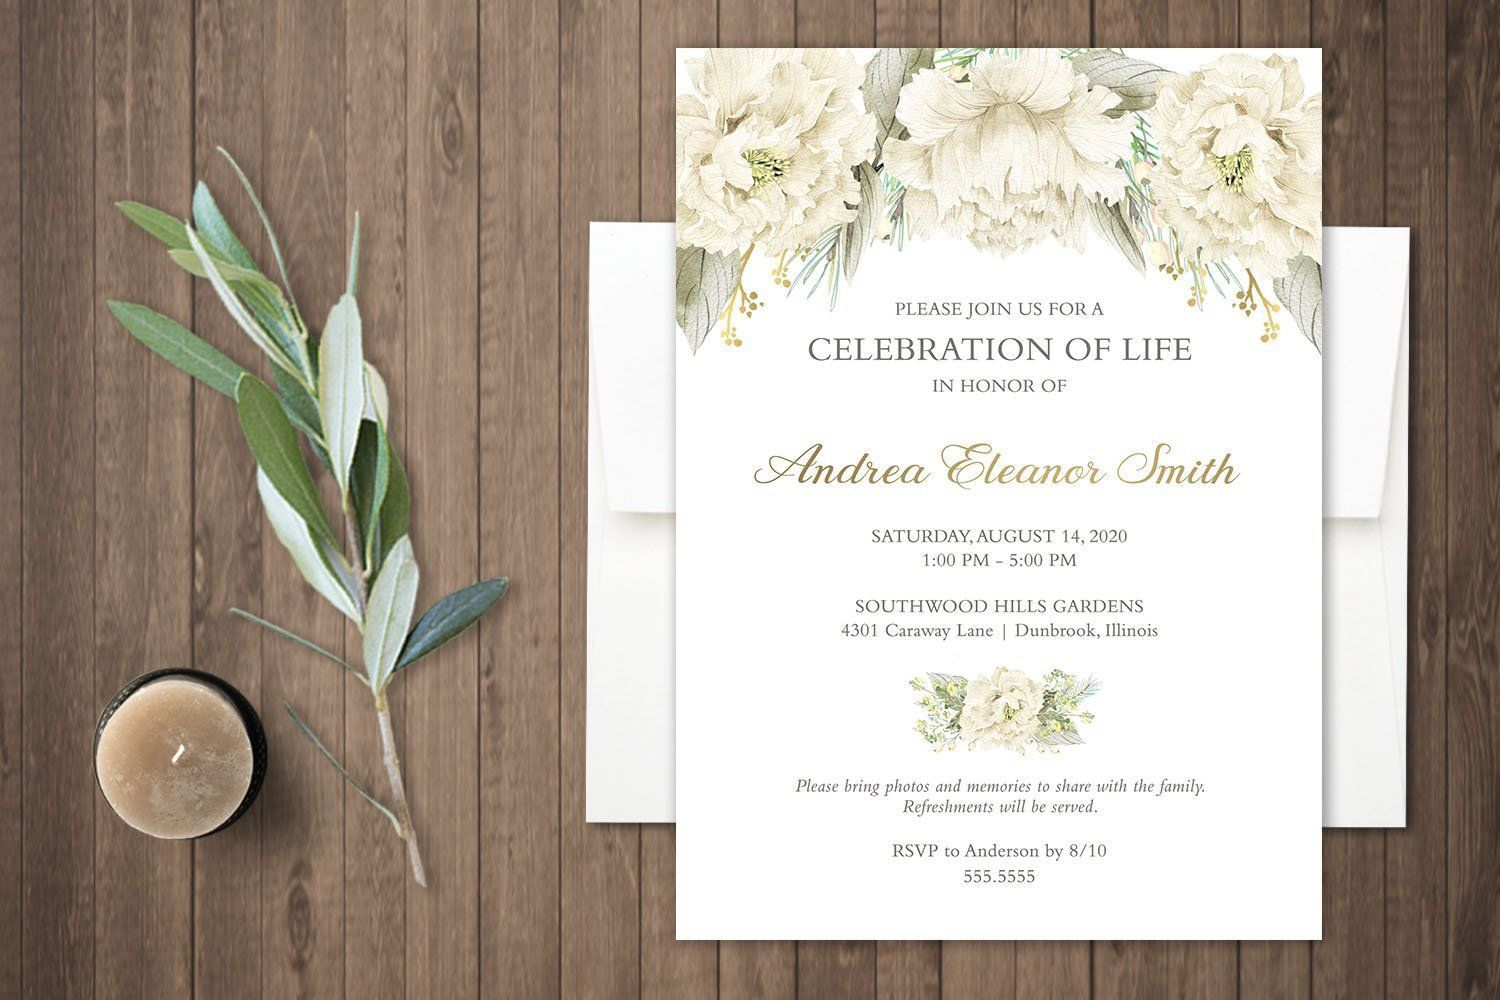 000 Fearsome Celebration Of Life Invitation Template Free High Resolution Full